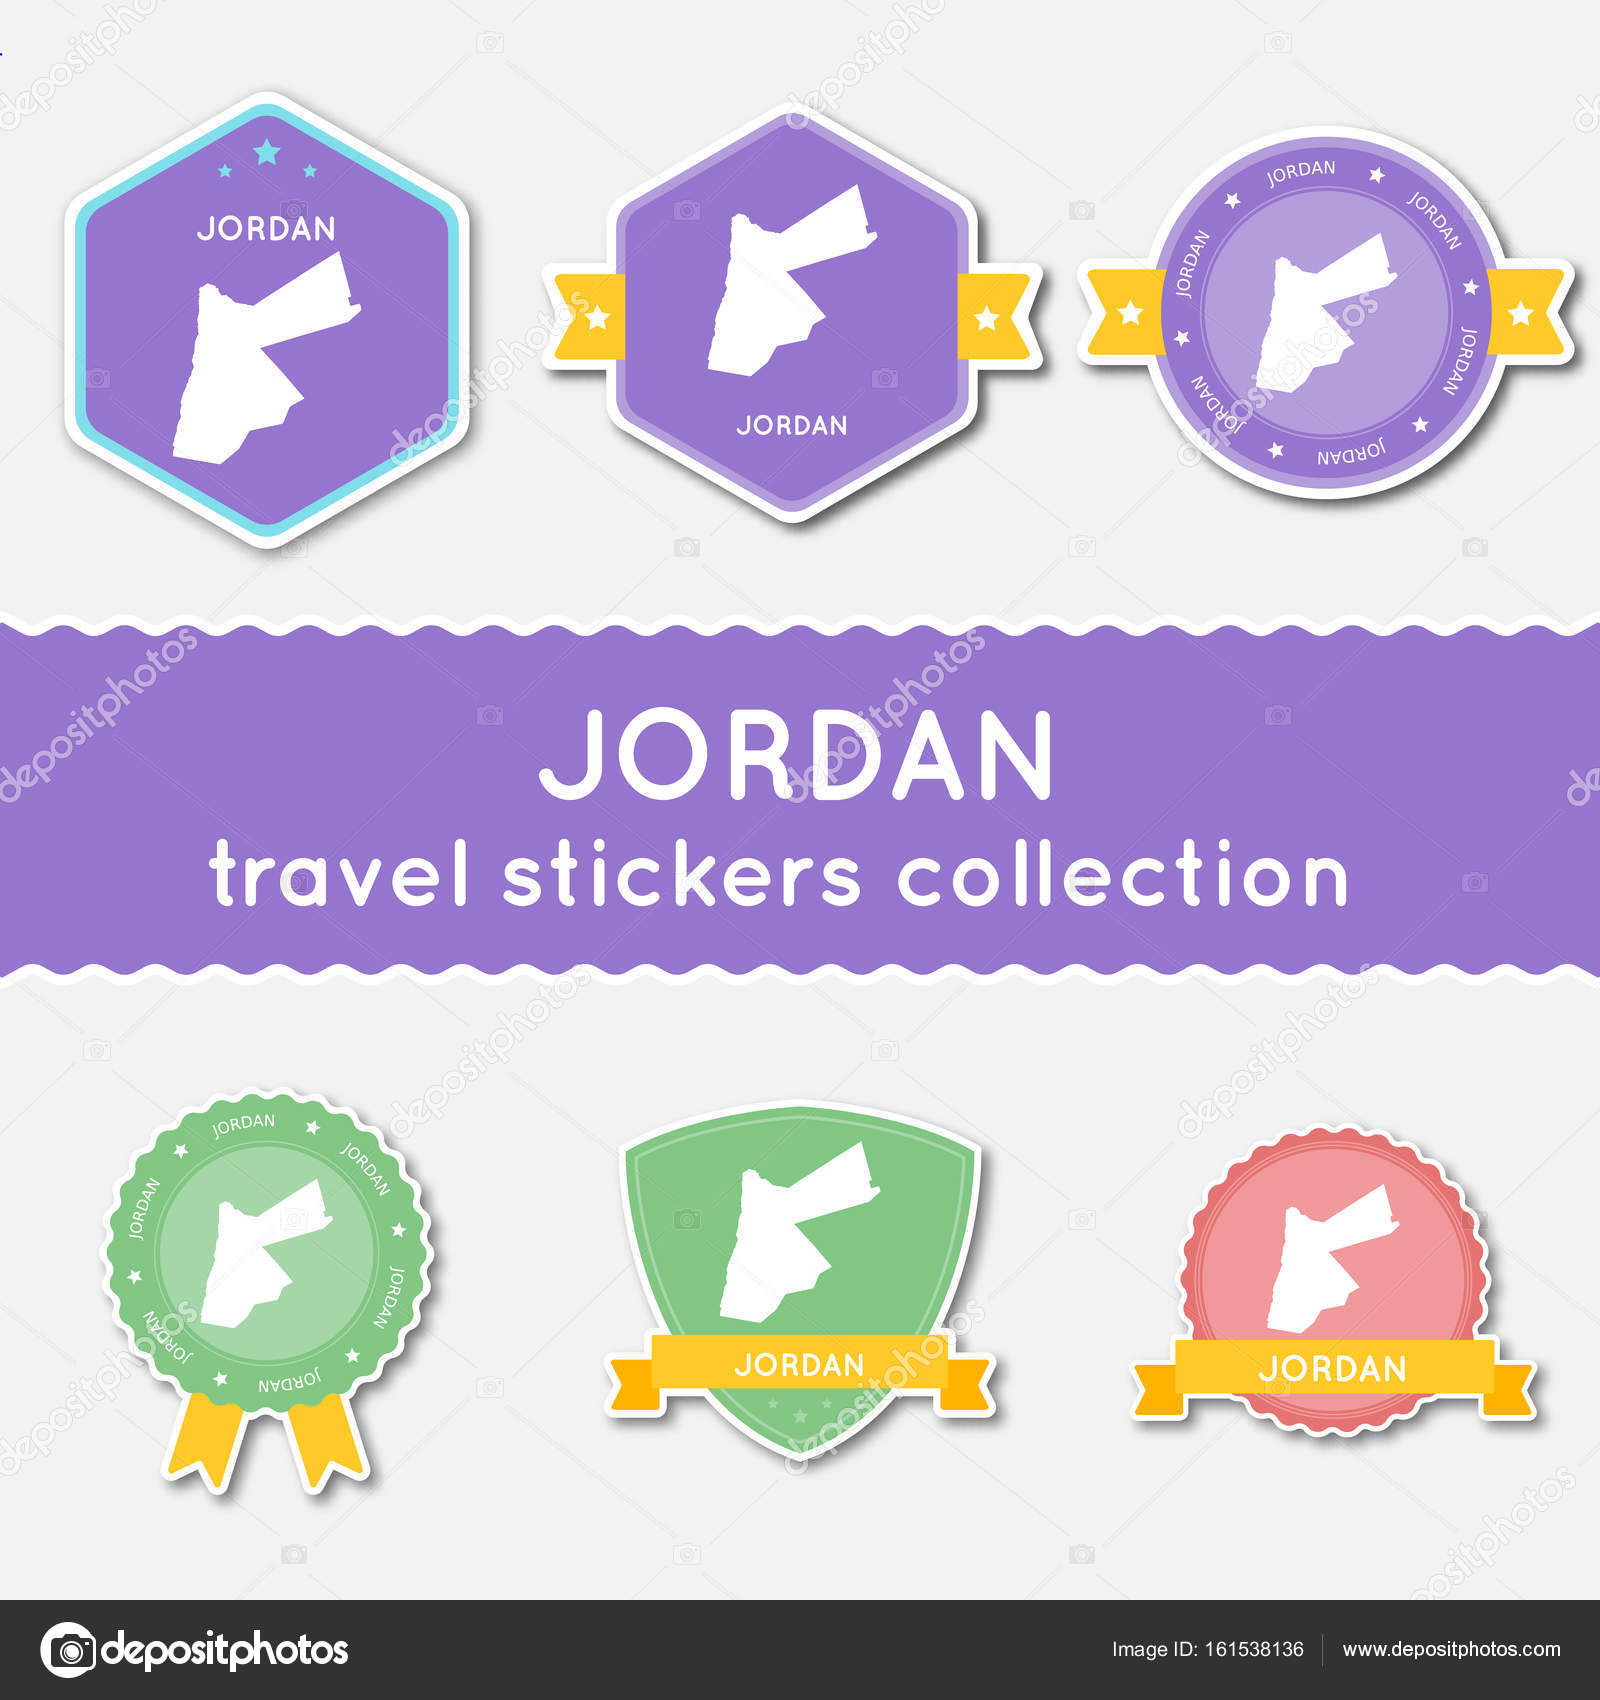 Jordan travel stickers collection big set of stickers with country map and name flat material